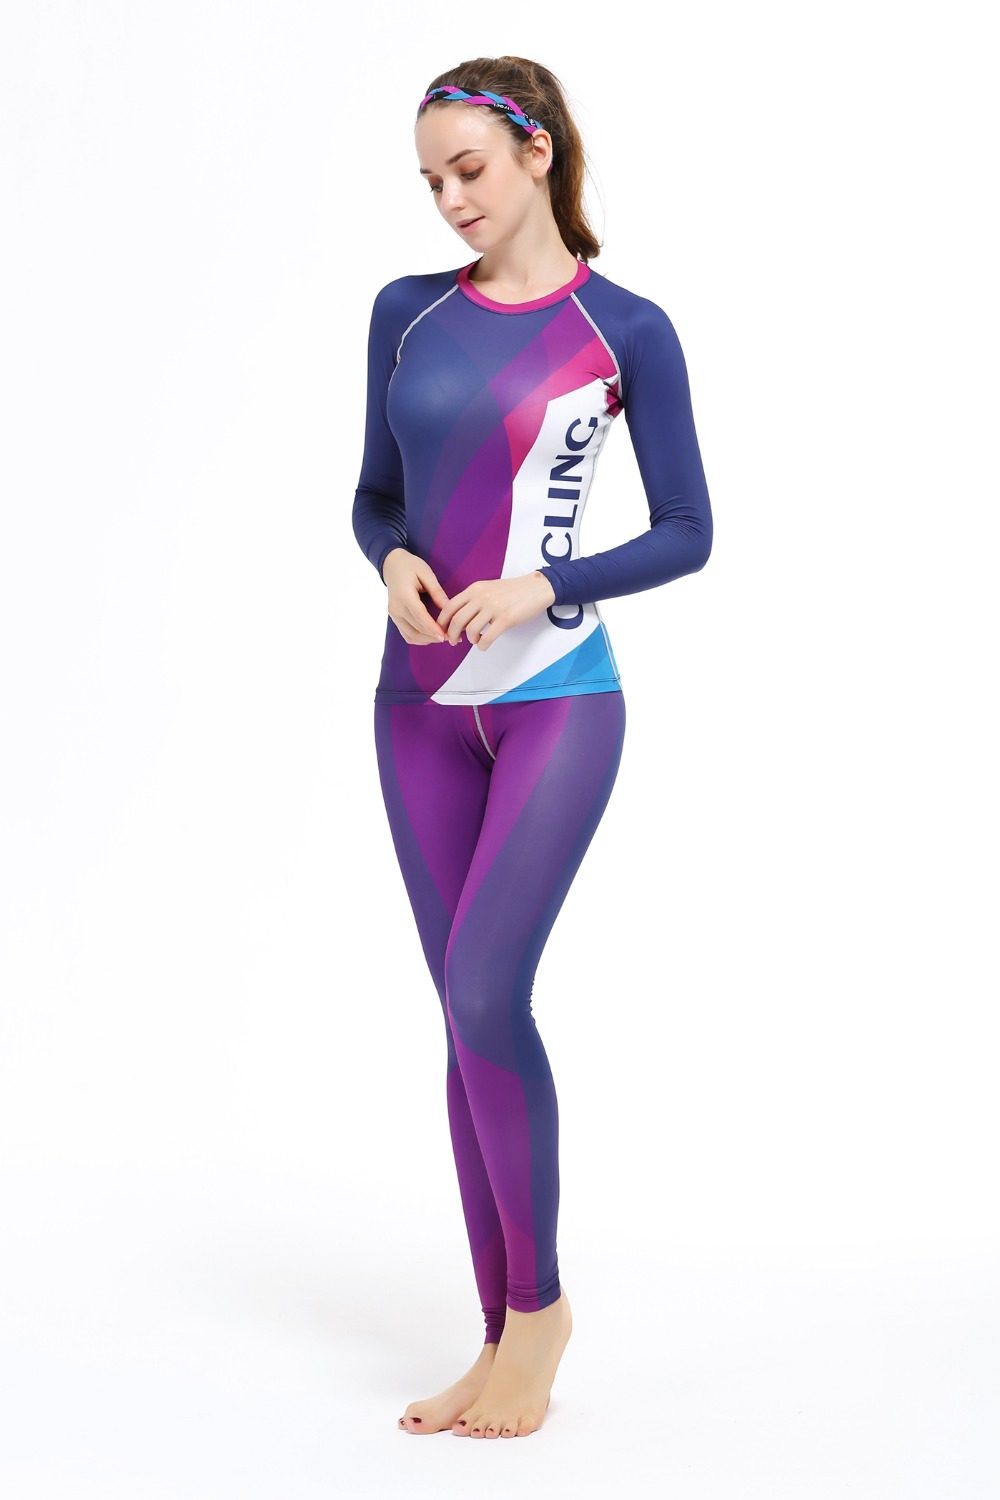 cf66acce7c8 2015 Ladies Cycling Jersey Woman MTB Ropa Ciclismo Shirt + Pants Figtness Yoga  Compression Bike Wear Cycling Clothing Woman -in Cycling Sets from Sports  ...